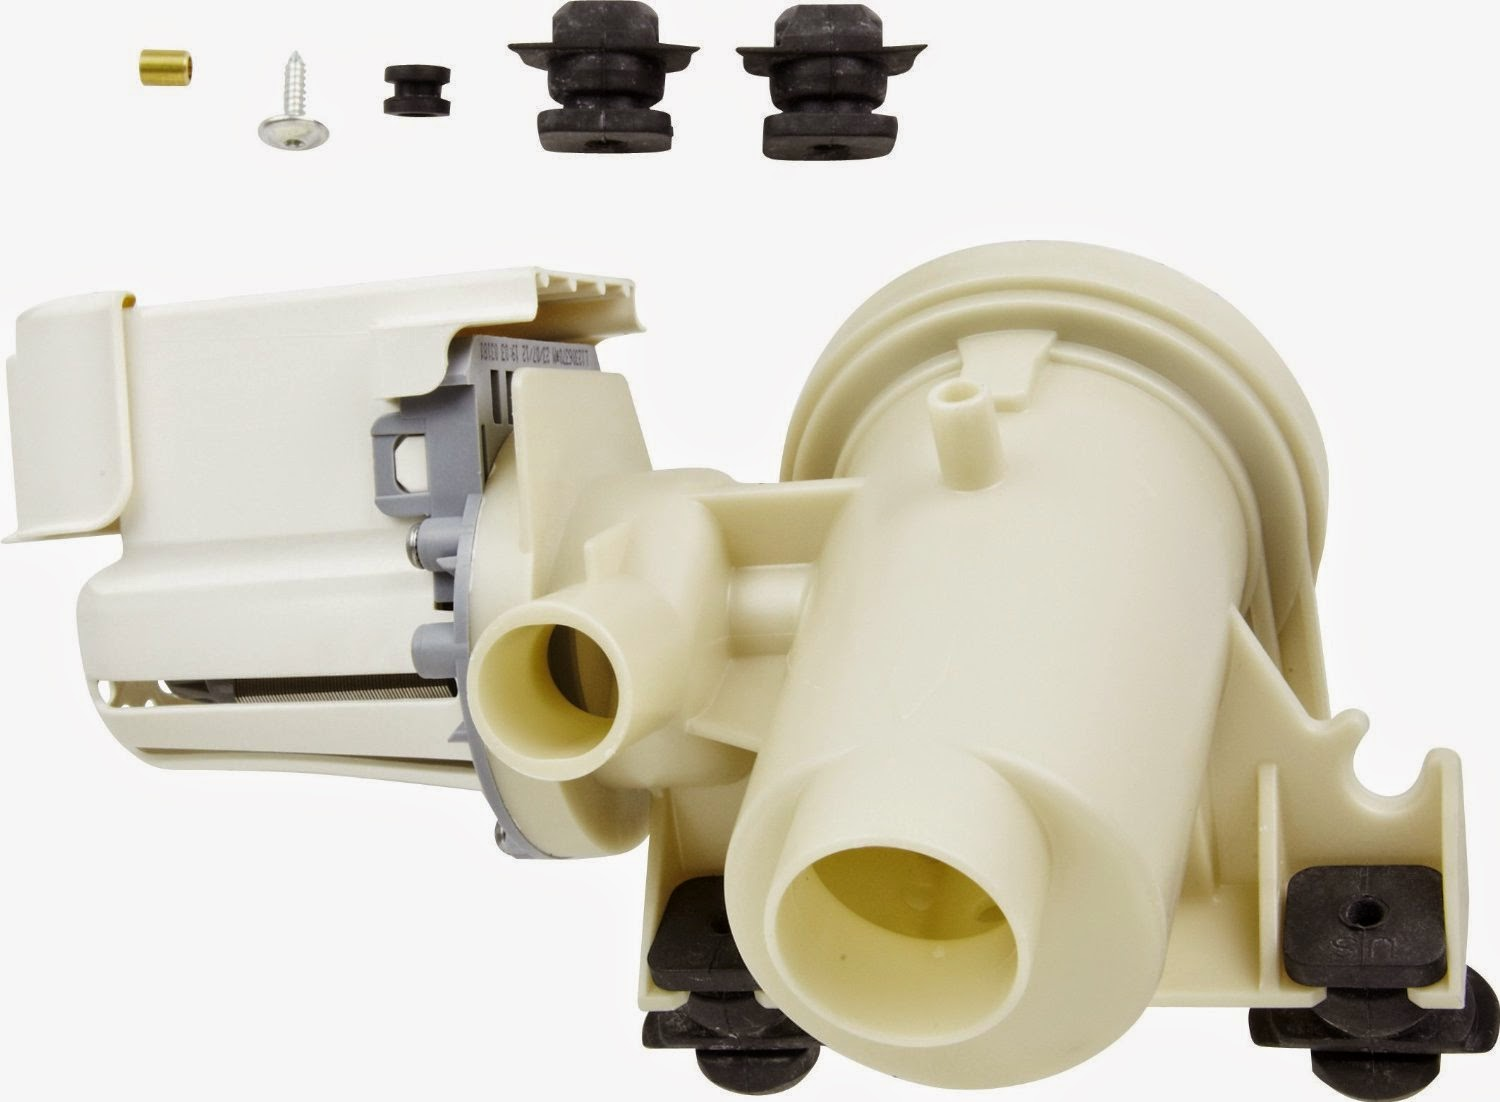 Whirlpool Duet Washer Parts